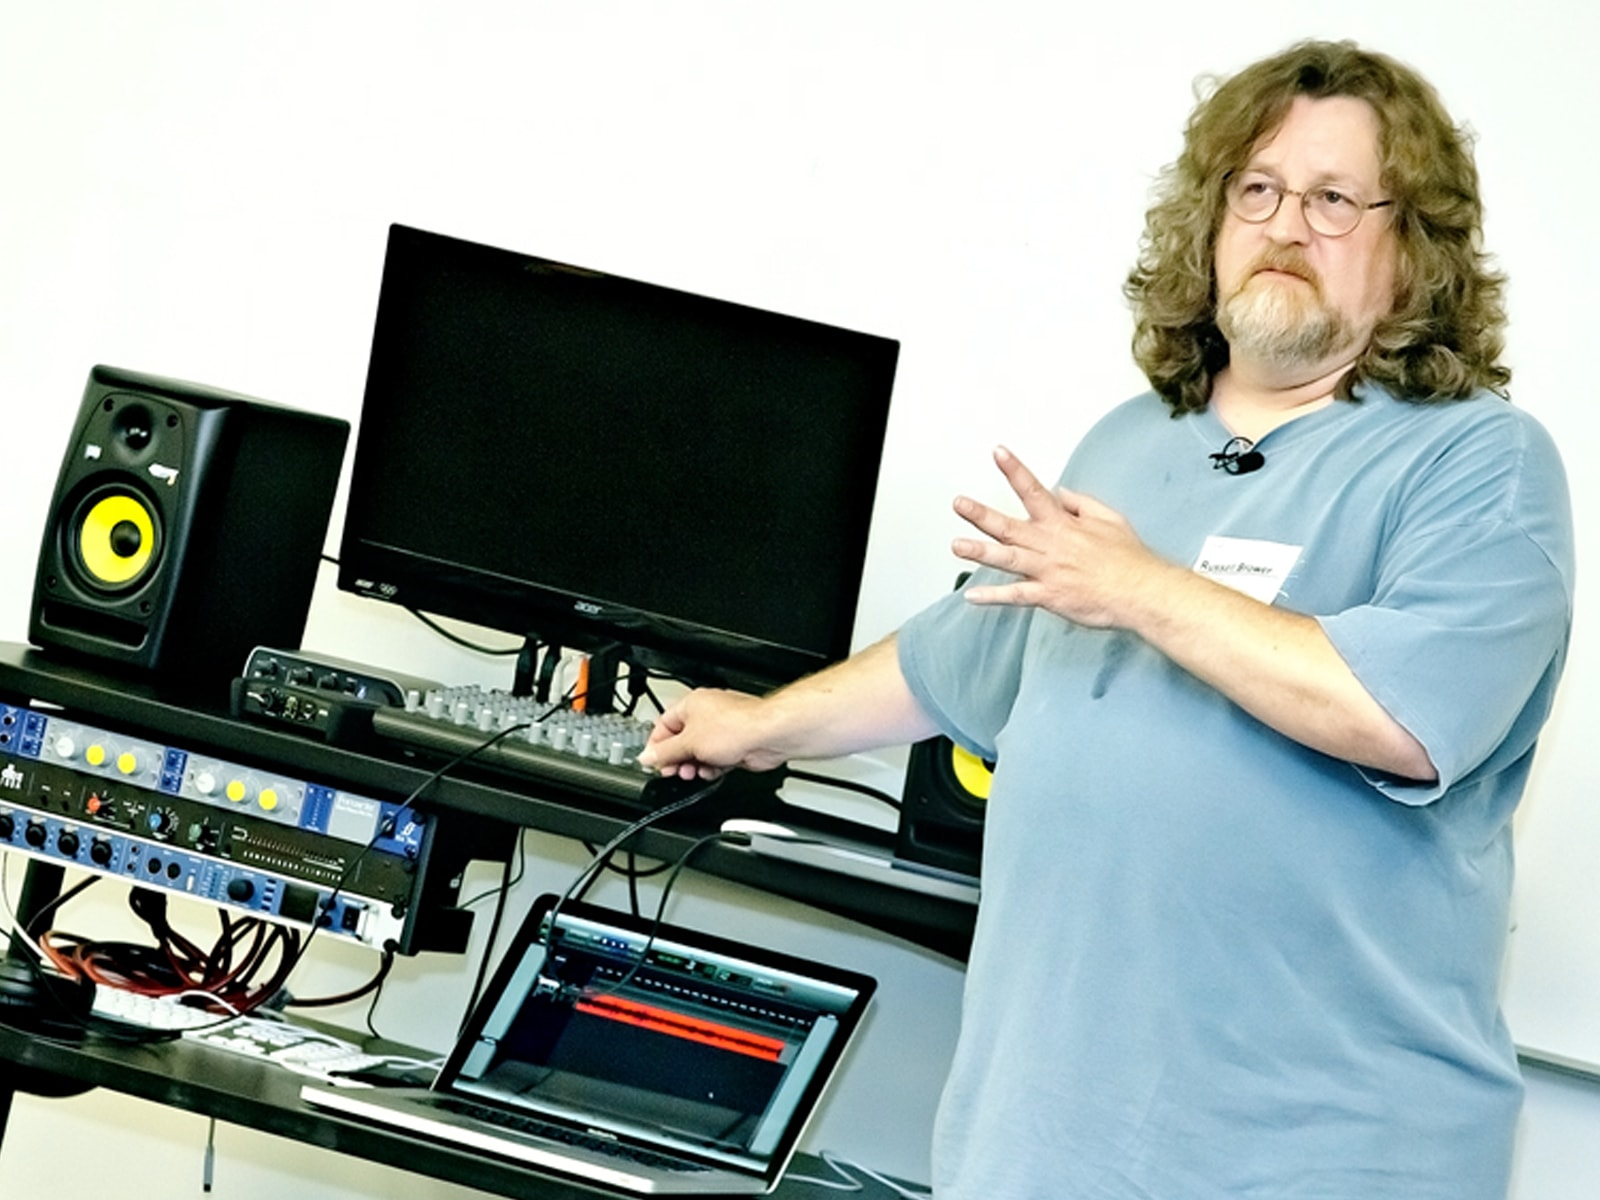 Russell Brower giving a sound demonstration in a DigiPen classroom